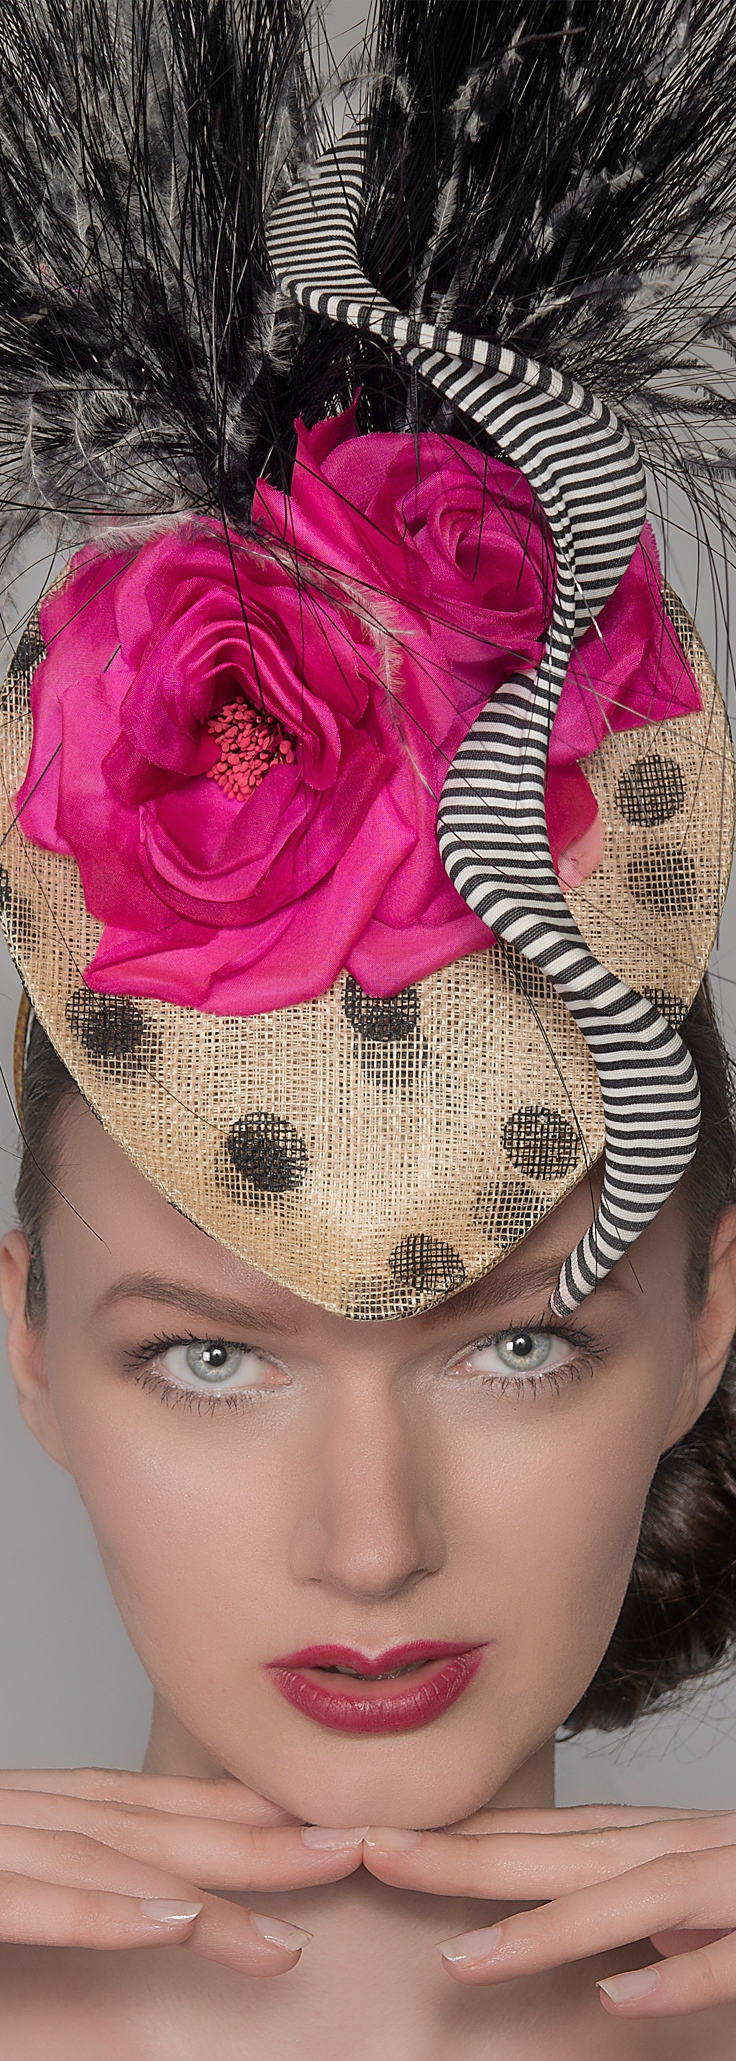 Ladies Designer Hat Hire or Bespoke Hats made to order. Book online for Royal Ascot Races. The only Hat Hire at Royal Ascot Races. Hats for other events, mother of the bride hats, available on Mail Order. Ascot Hats from Philip Treacy, Jane Taylor, Bundle Maclaren, Rosie Olivia, Nigel Rayment and other leading Milliners. #millinery #couture #fashionista #hats